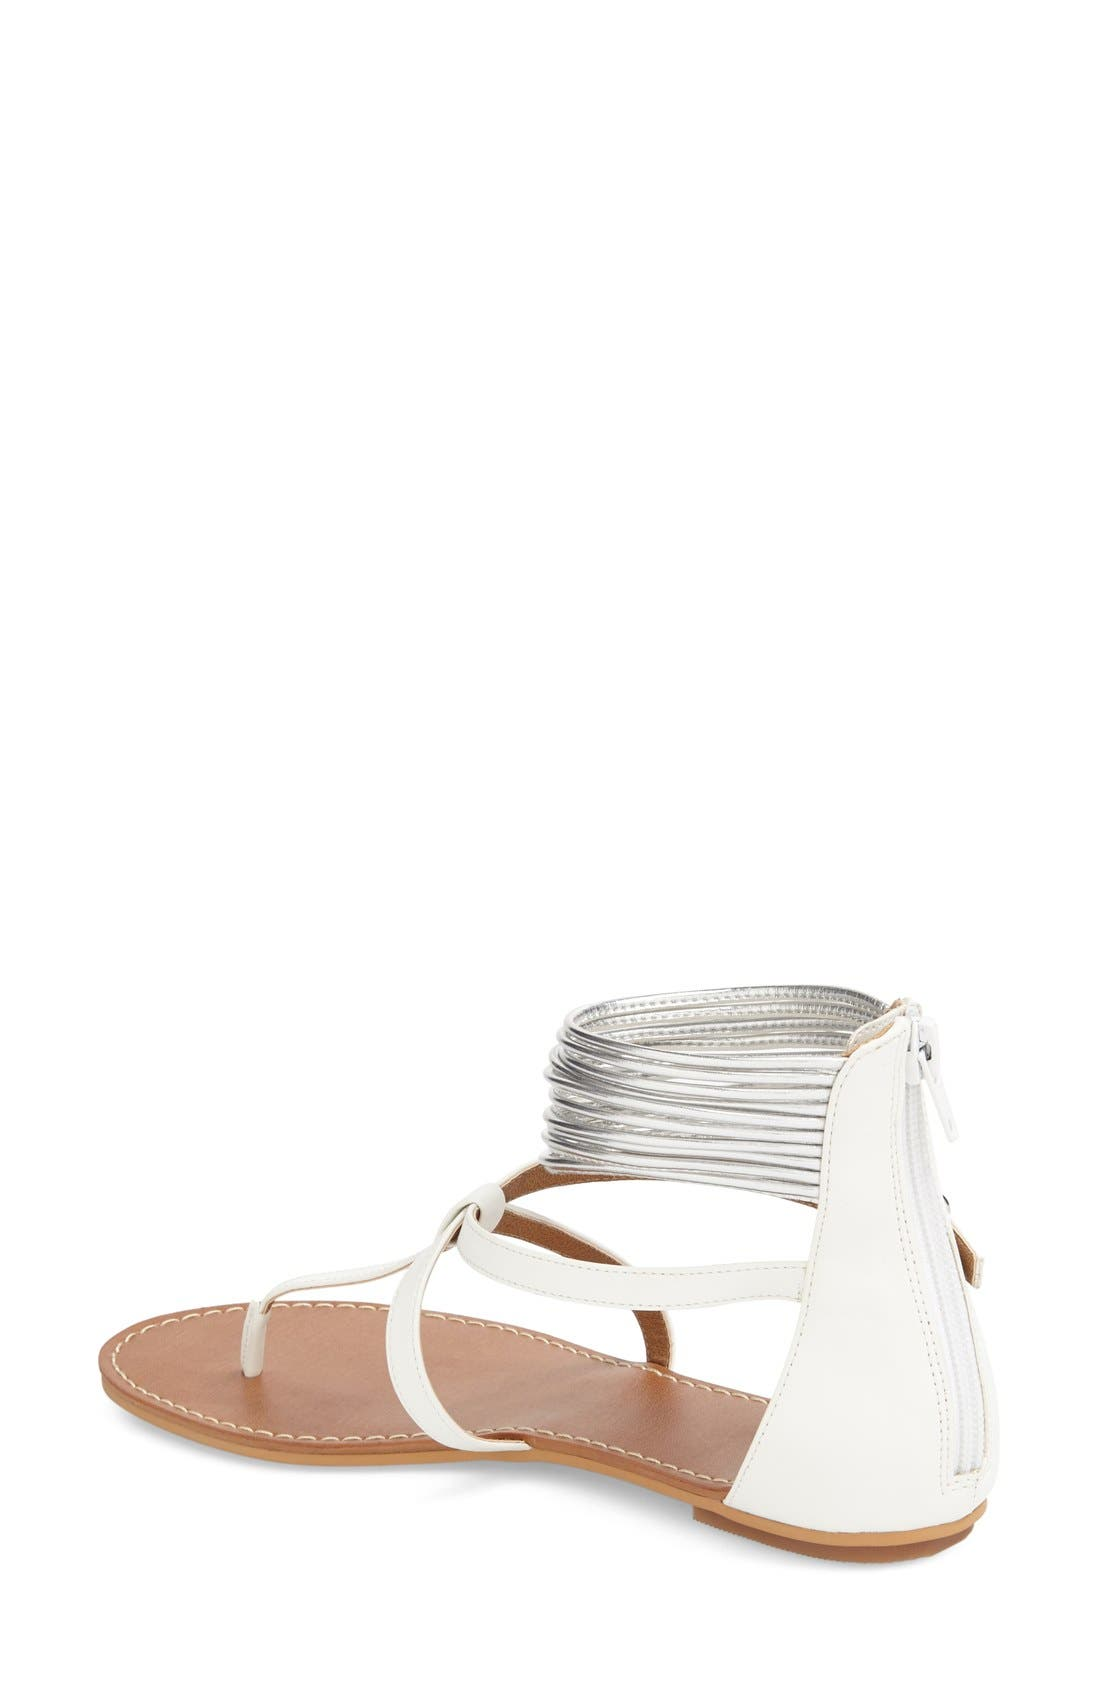 Alternate Image 2  - BP. 'Santiago' Flat Sandal (Women)